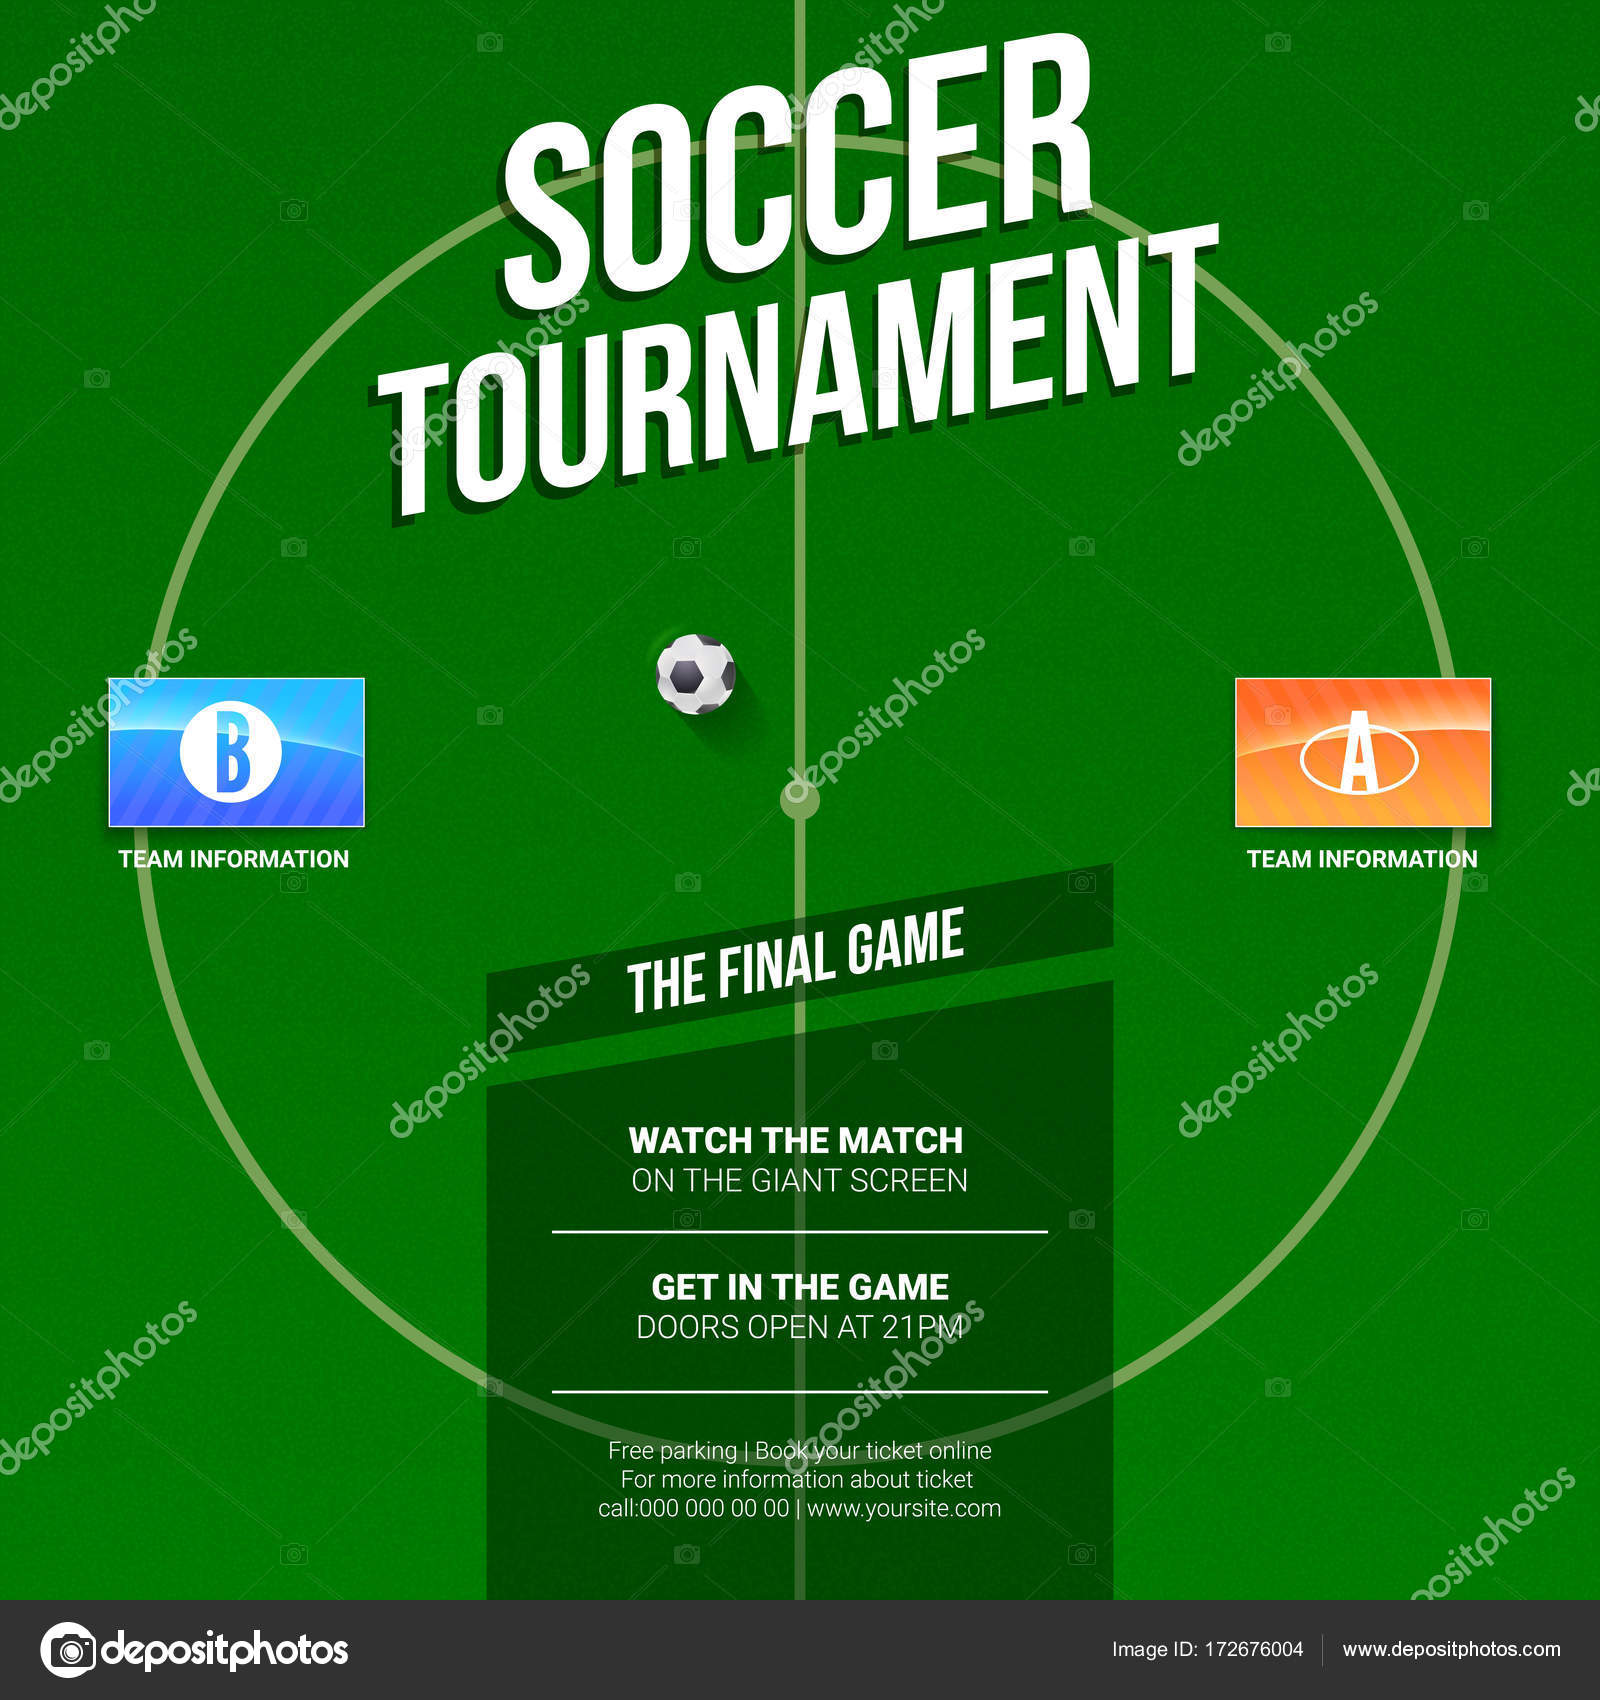 soccer football ad template for game tournament green soccer